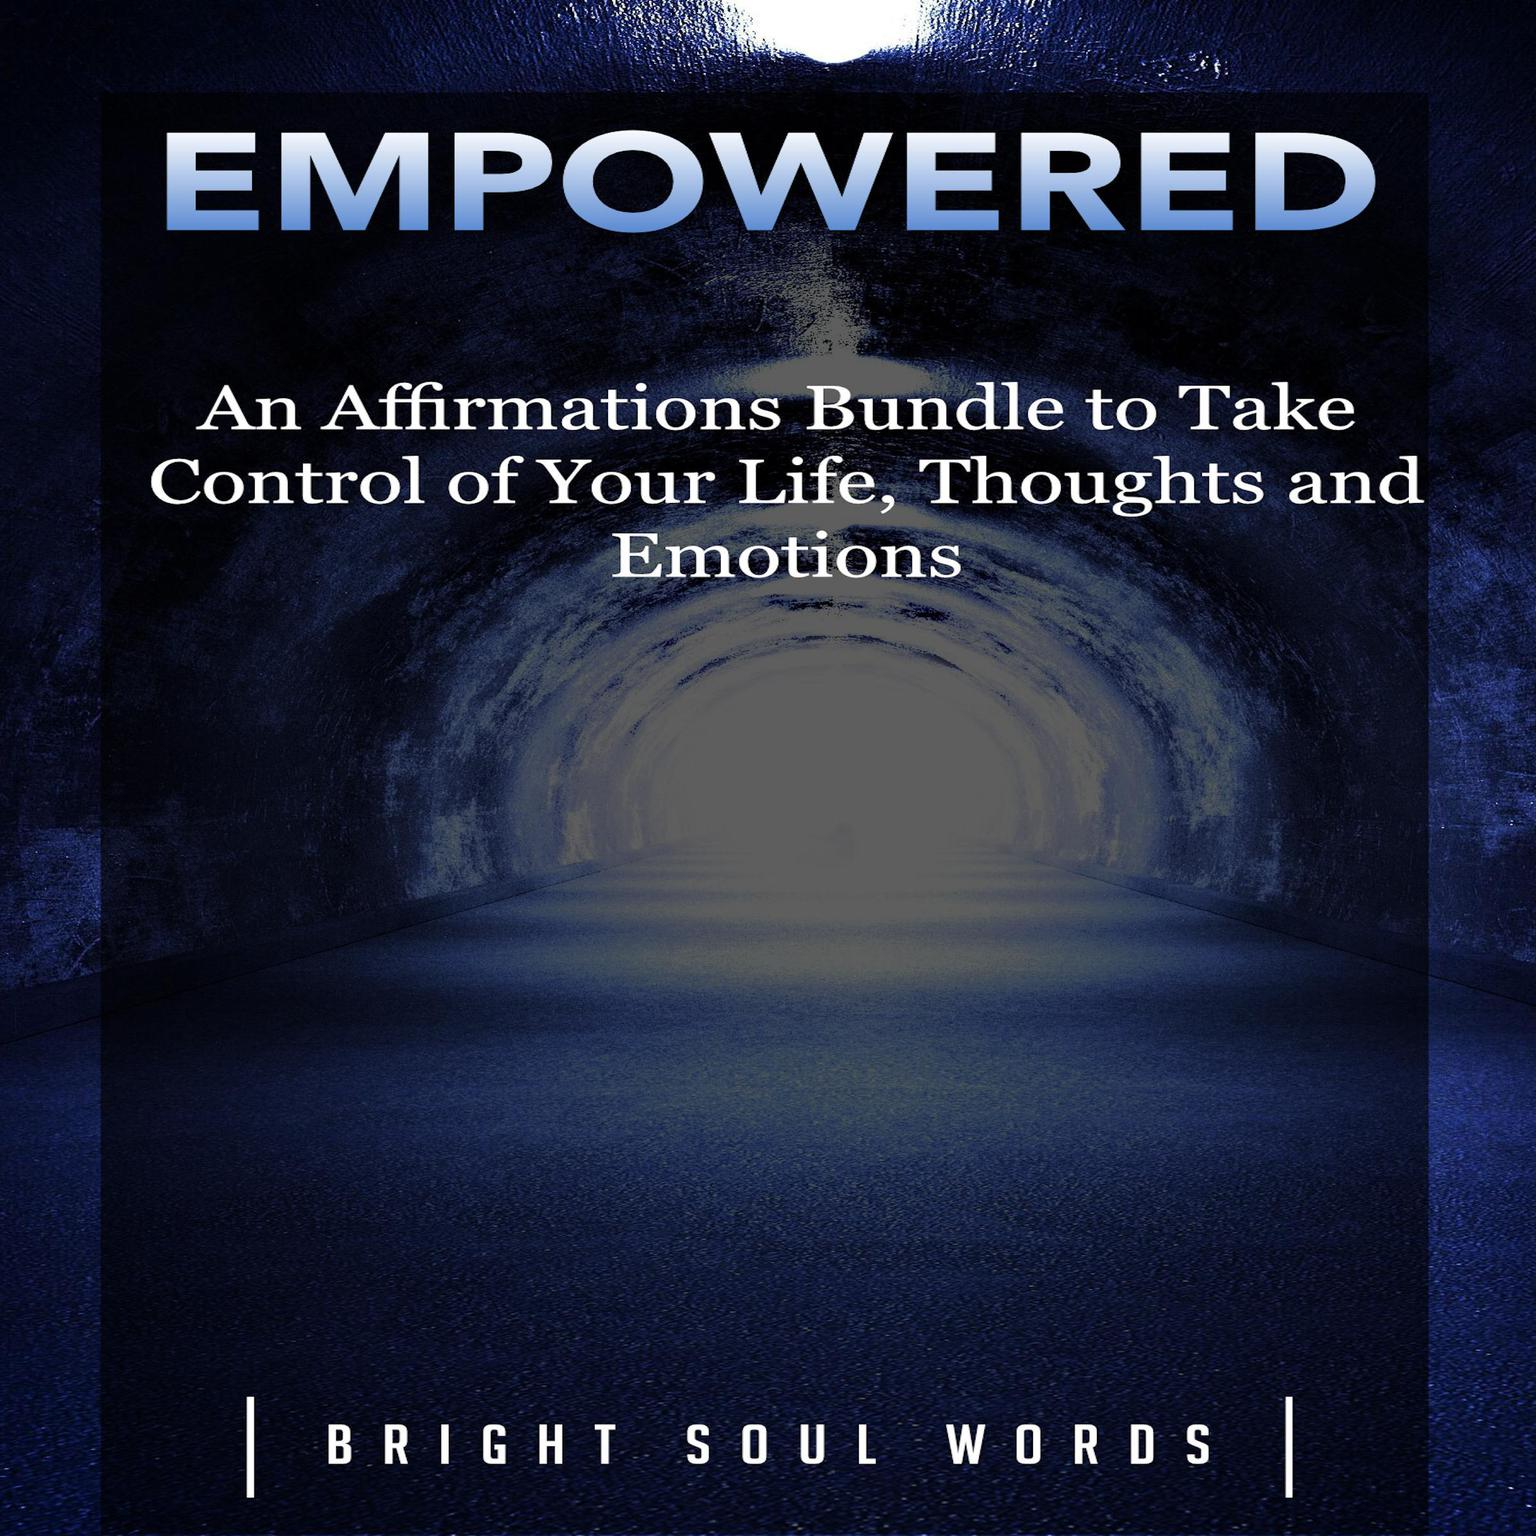 Empowered: An Affirmations Bundle to Take Control of Your Life, Thoughts and Emotions Audiobook, by Bright Soul Words